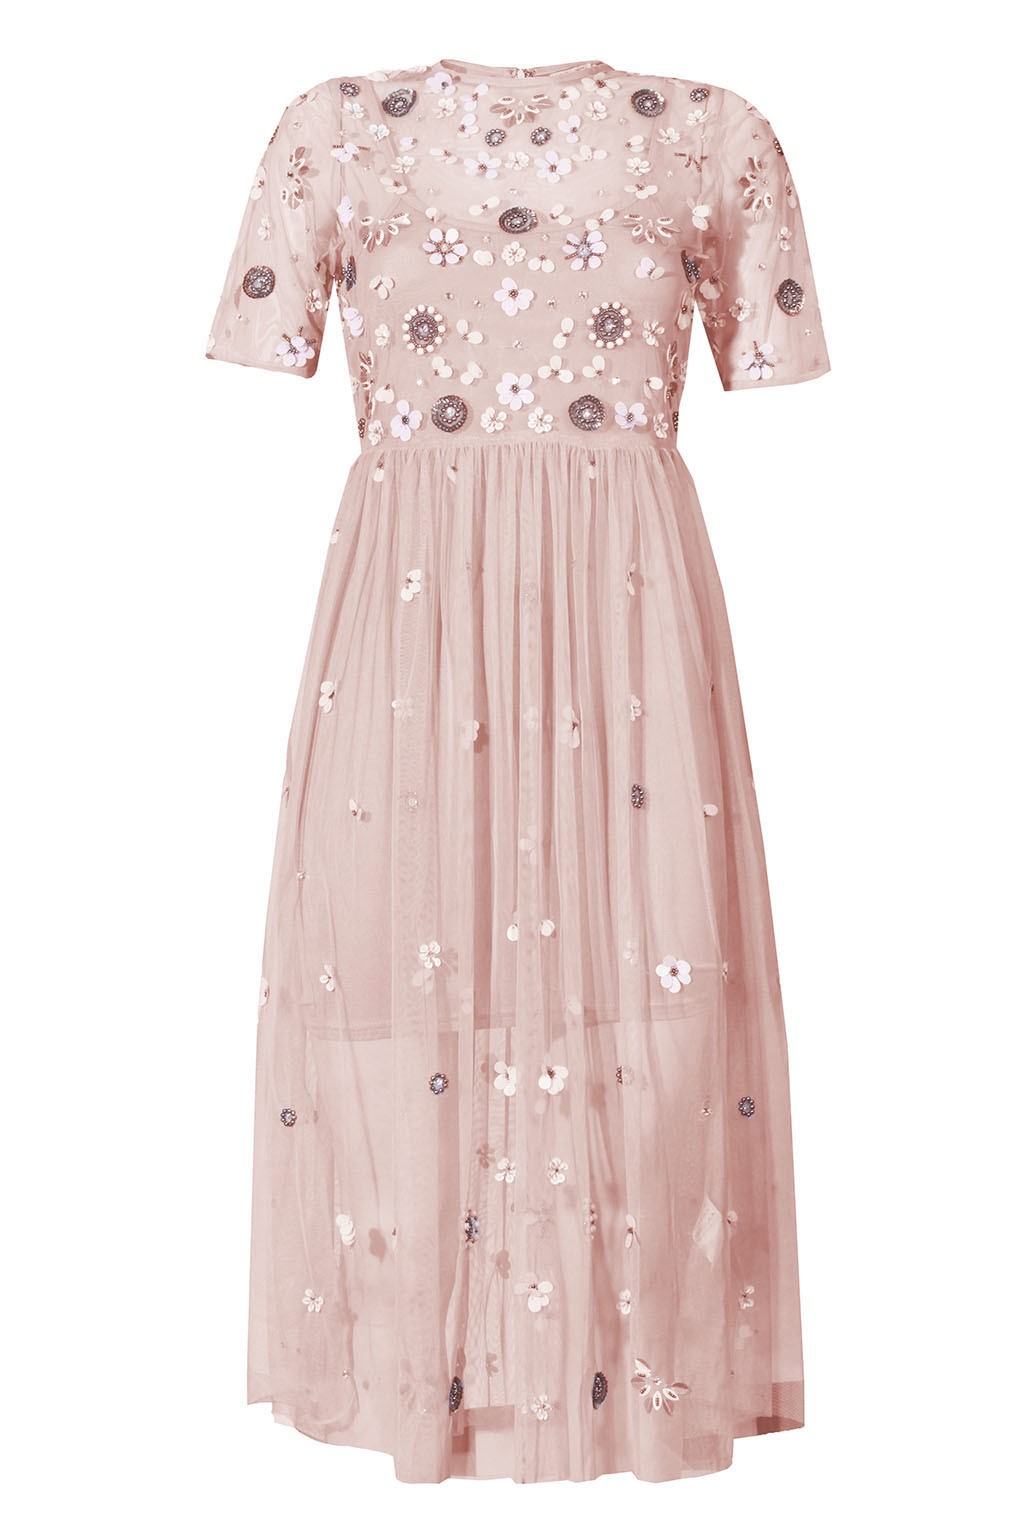 lace beads baby pink sheer dress party dresses. Black Bedroom Furniture Sets. Home Design Ideas